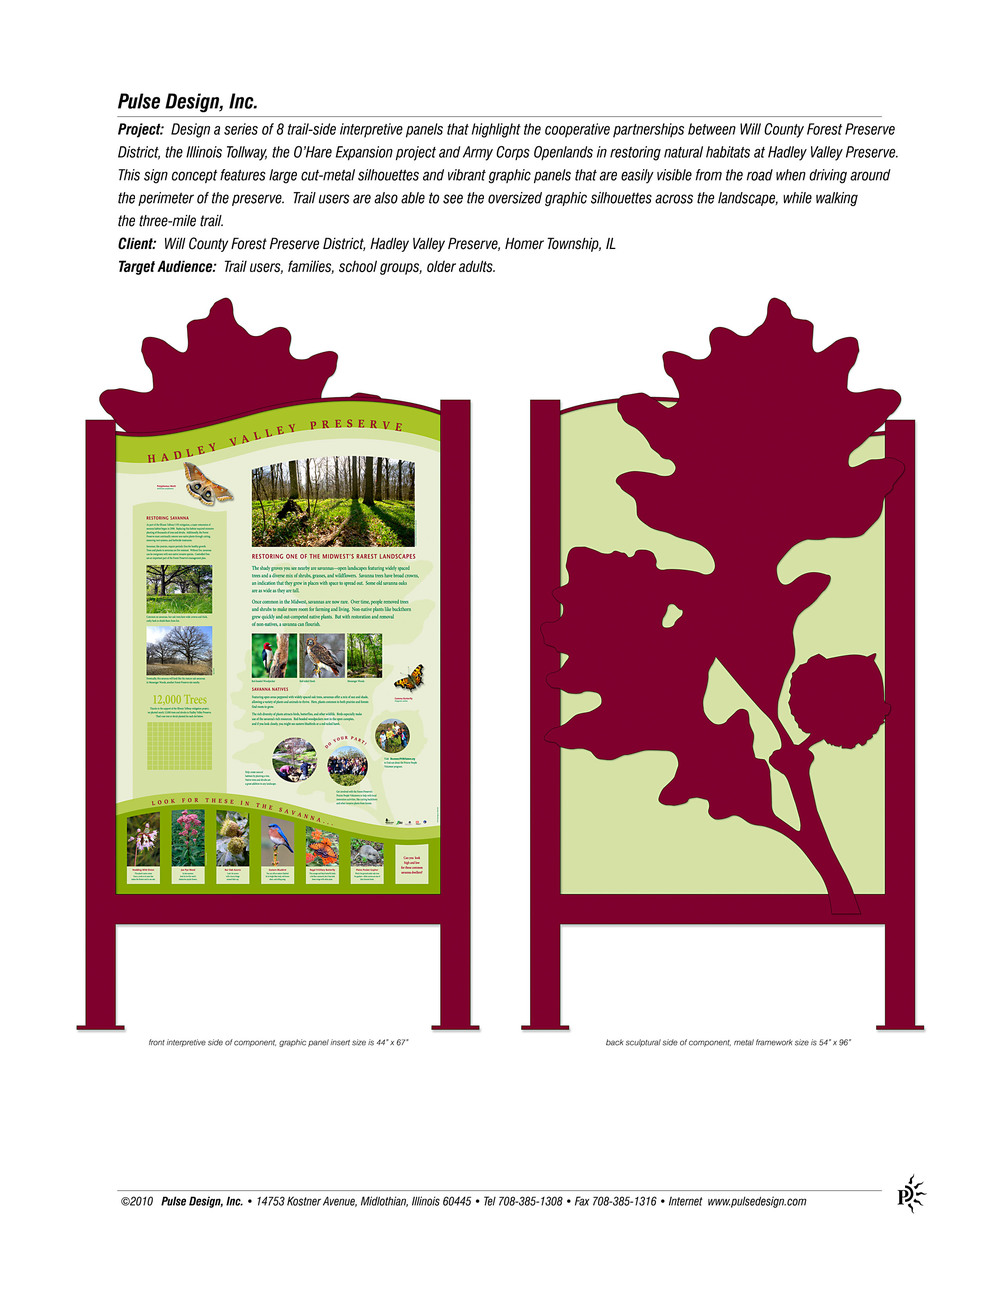 Hadley-Valley-Trail-Sign-Oak-Lg-Pulse-Design-Inc.jpg